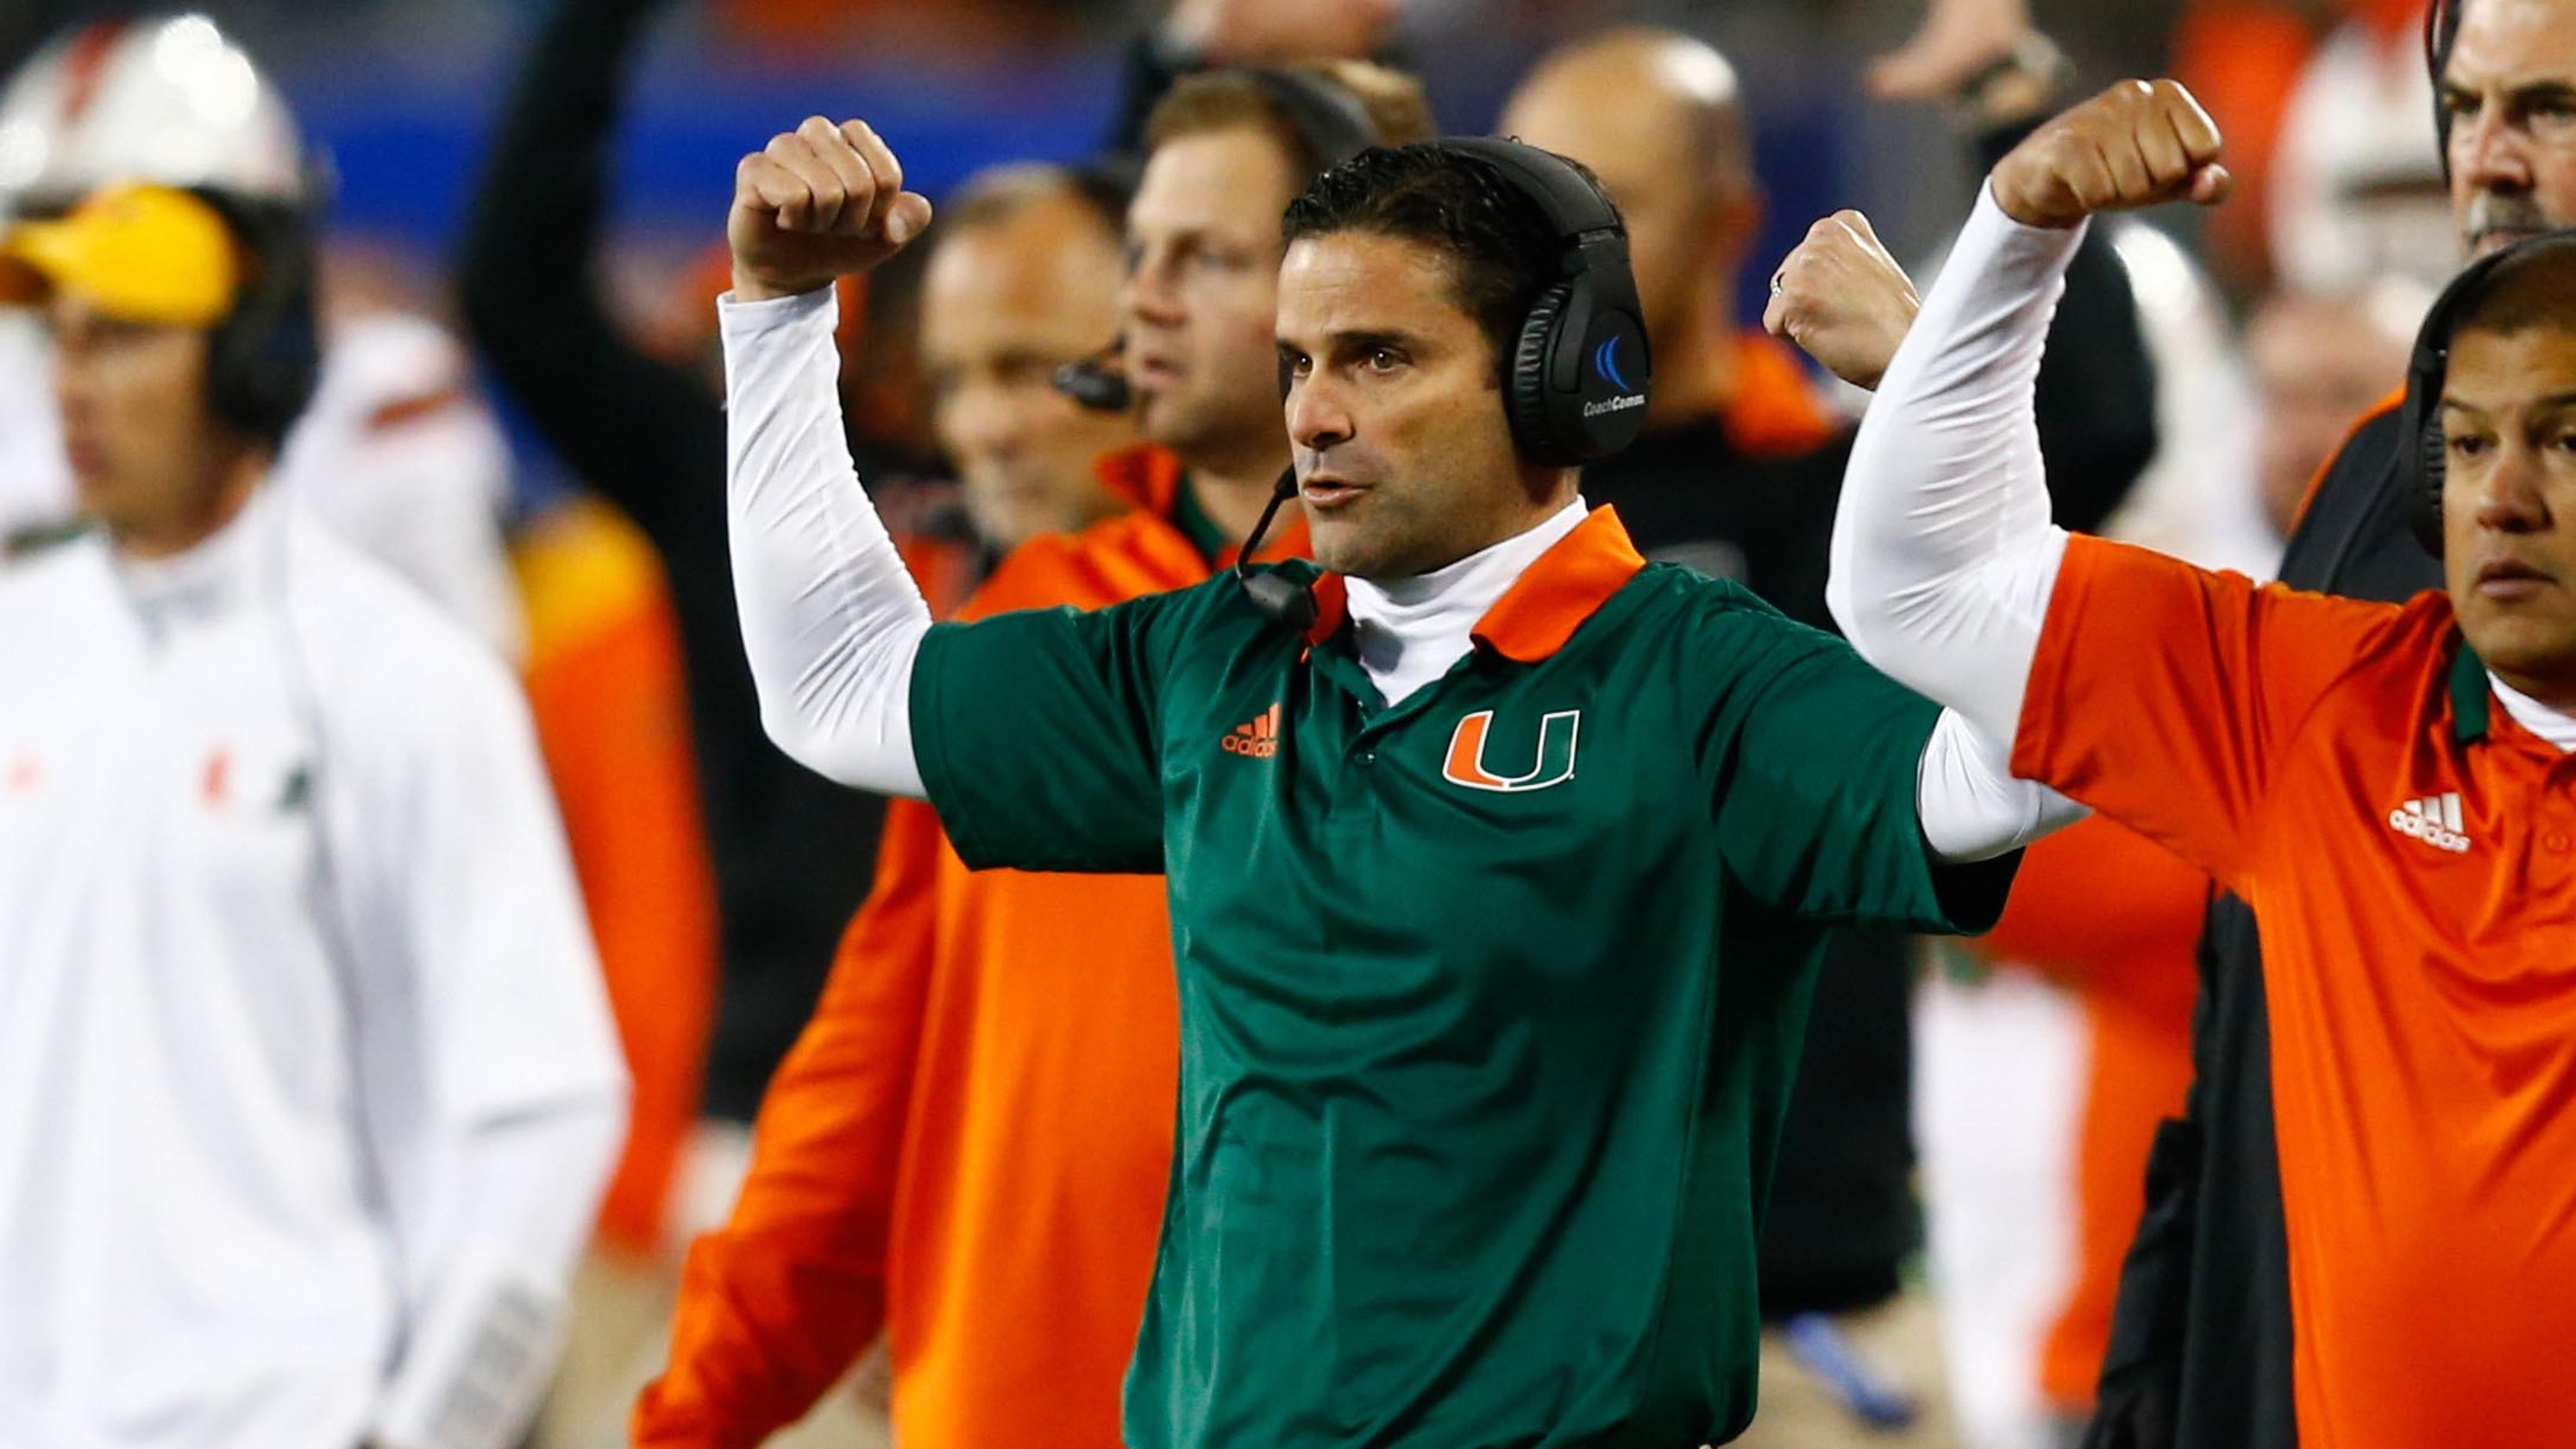 Miami hires former defensive coordinator Manny Diaz to replace Mark Richt as head coach